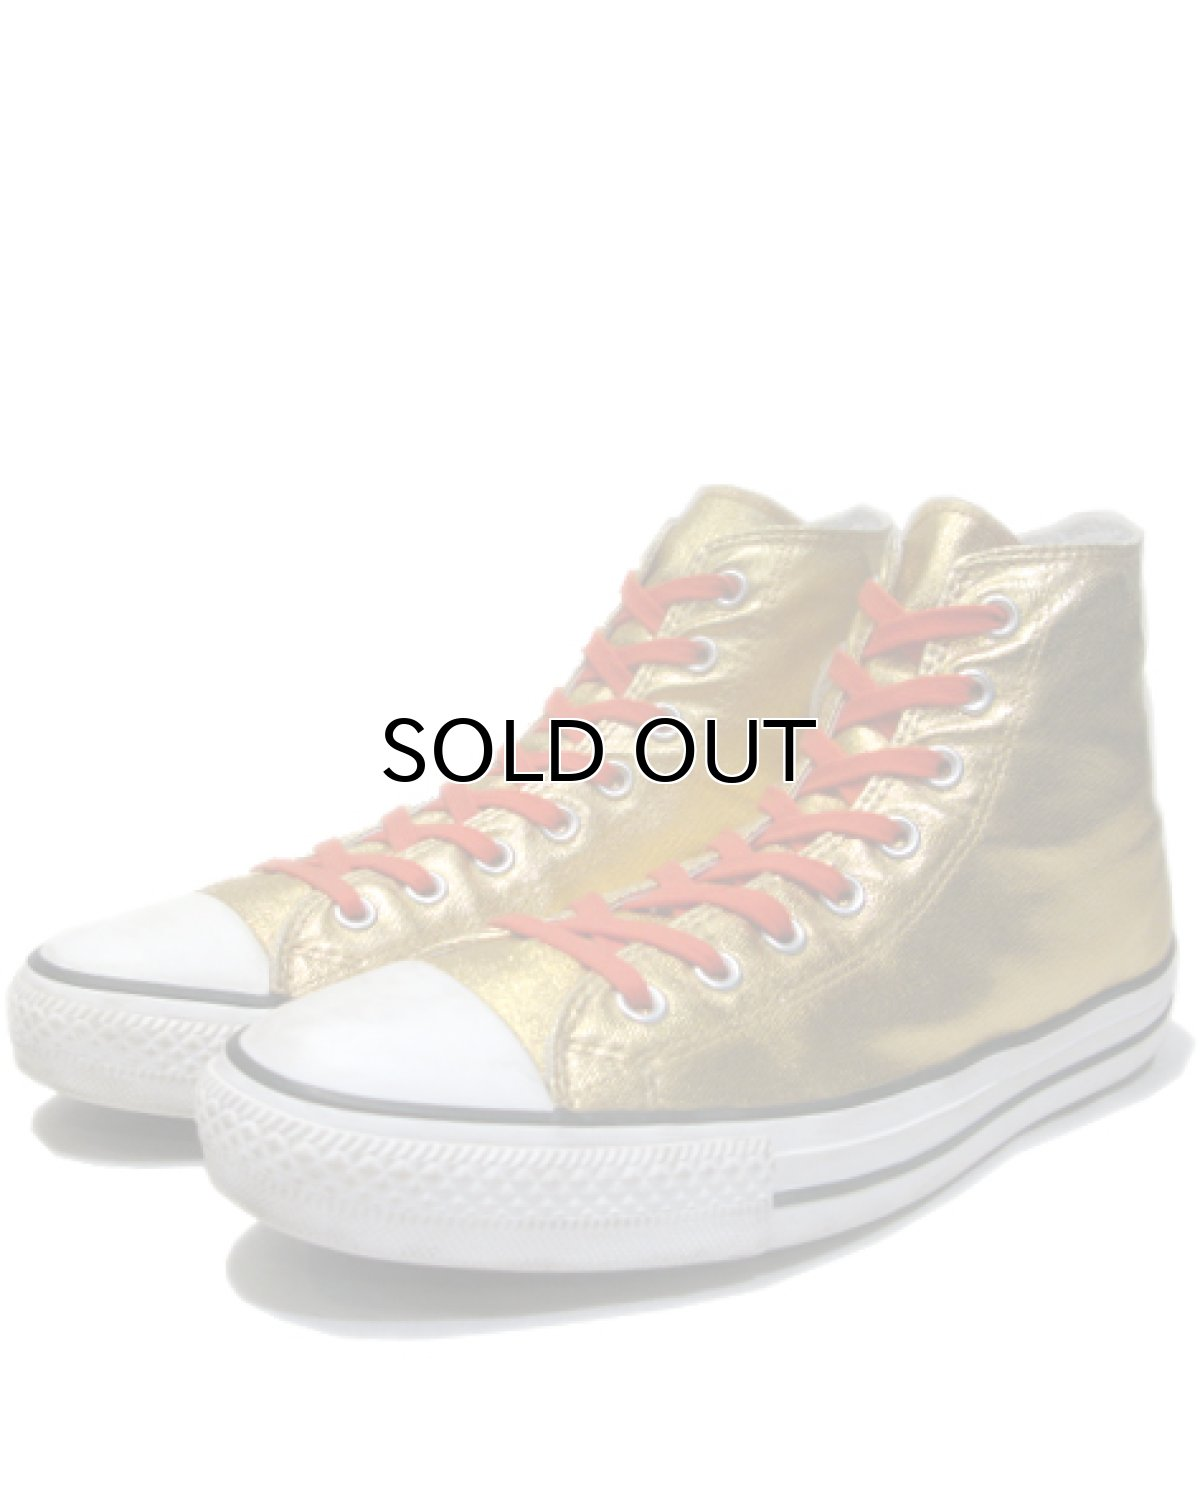 画像1: 00's Converse ALL STAR Hi-Cut Sneaker GOLD size 11 (29.5 cm) (1)